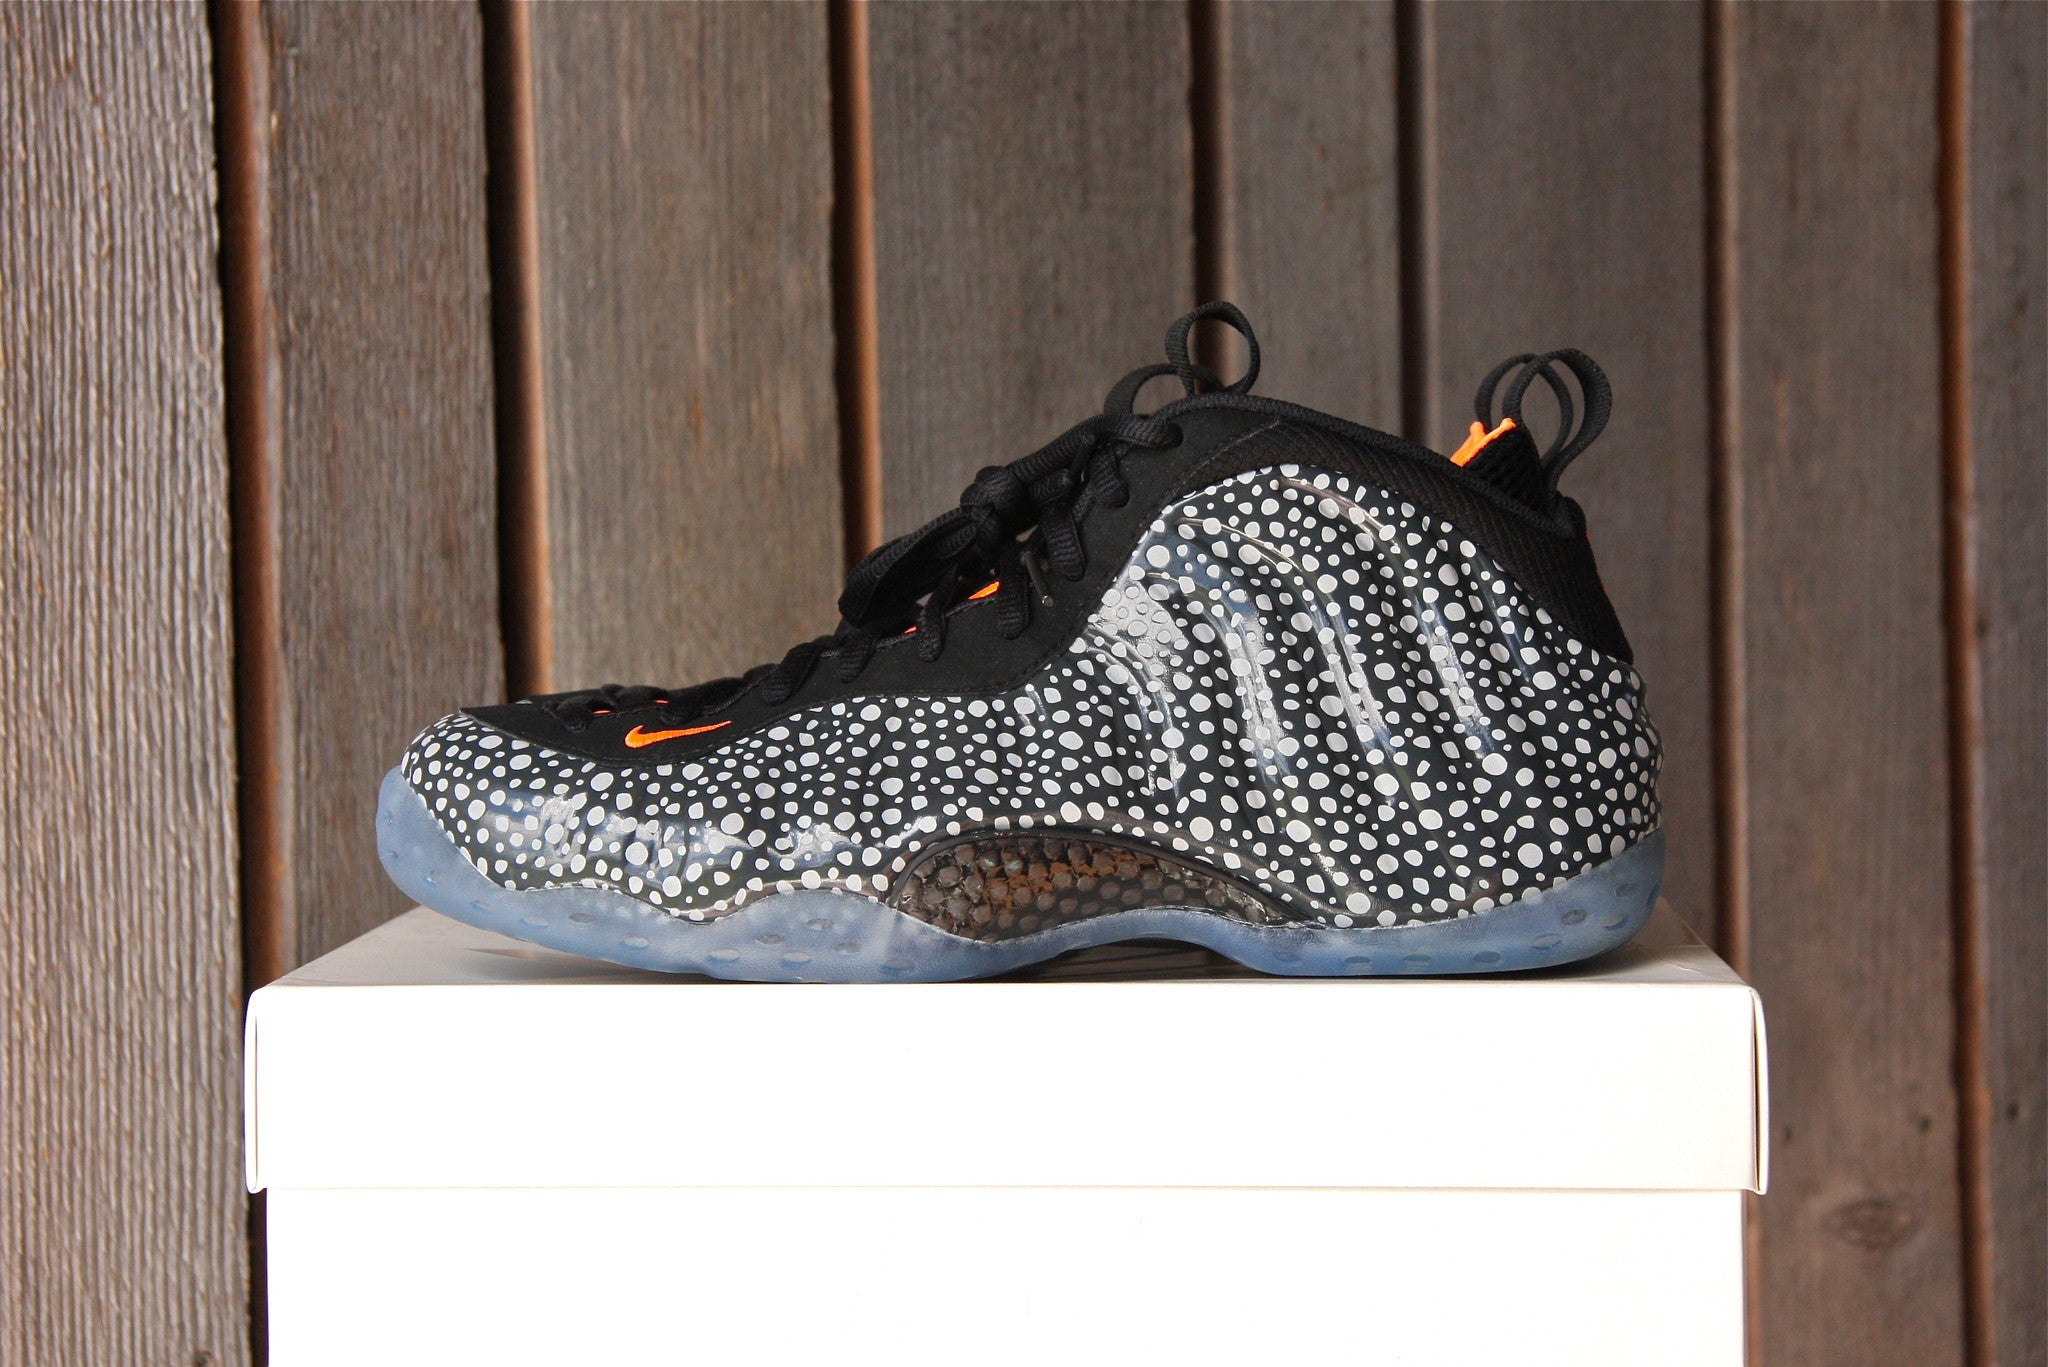 Nike Foamposite One PRM (Safari) VNDS